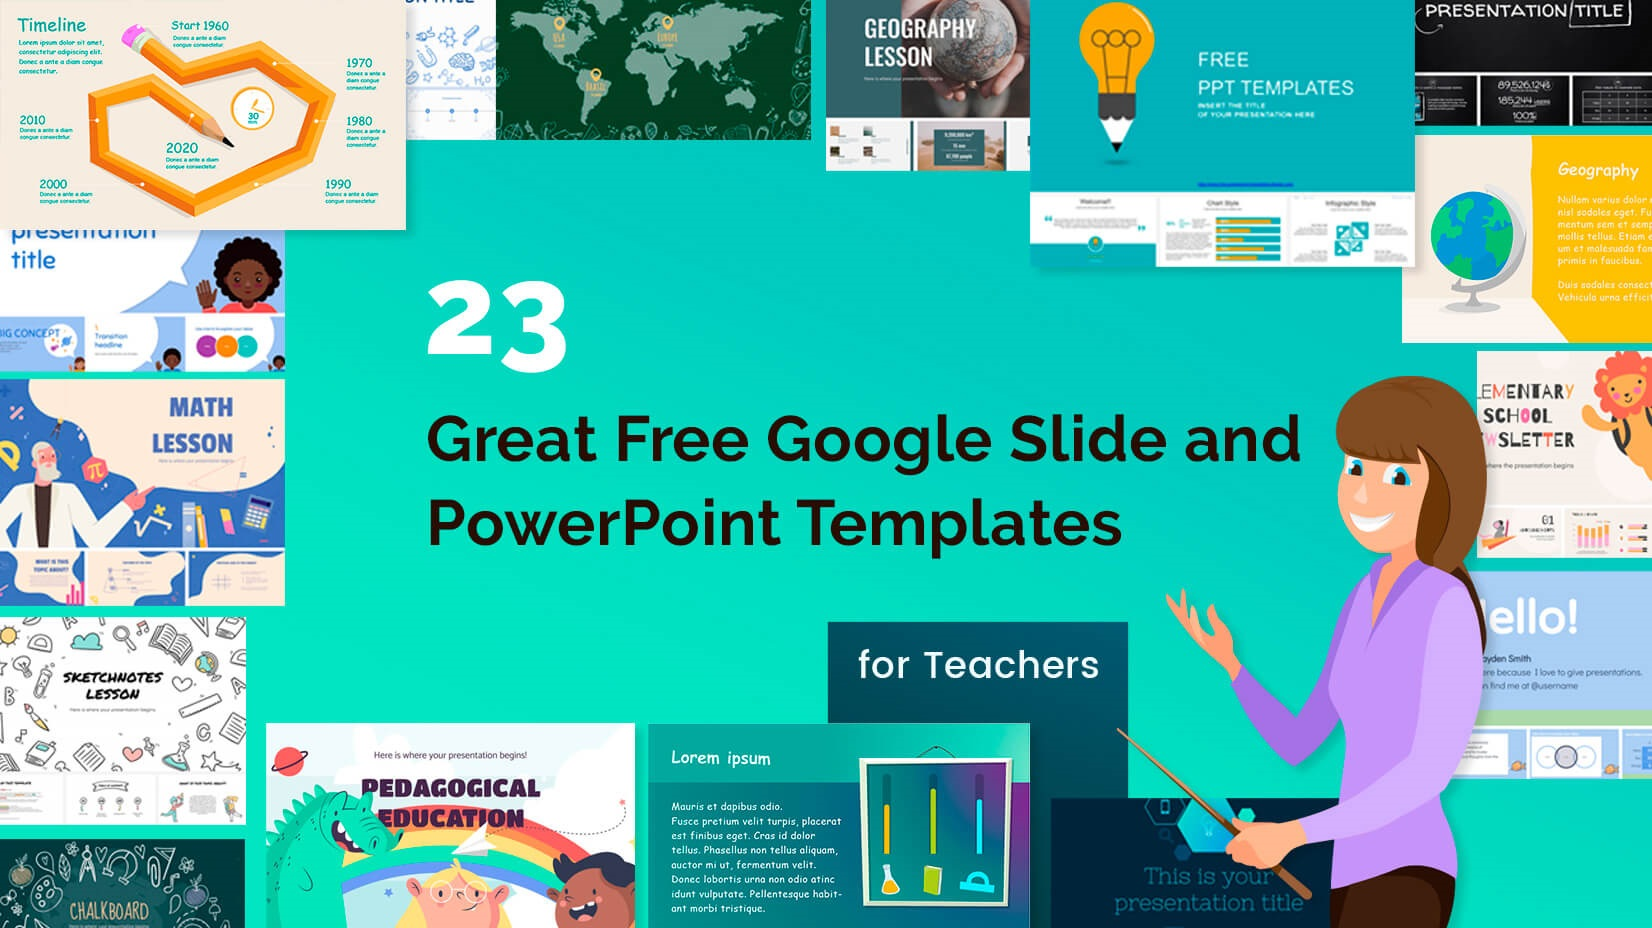 004 Imposing Free Downloadable Power Point Template High Def  Templates Download Powerpoint 3d Animation And Clipart Animated Background For Mental HealthFull